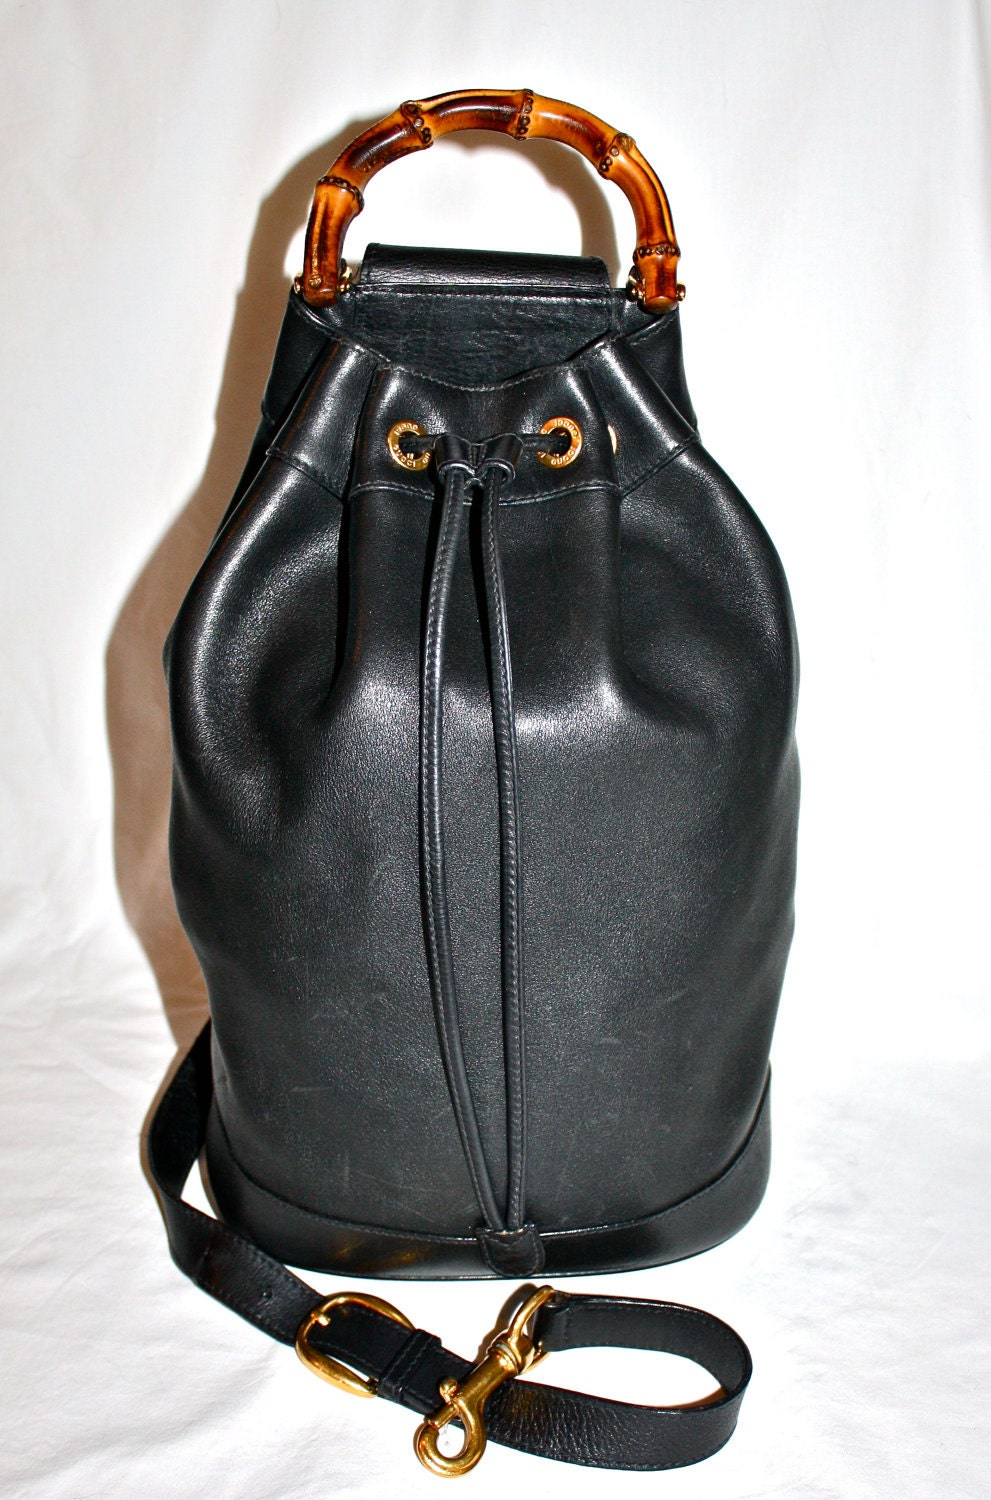 c7dbe02f7085 Authentic GUCCI BACKPACK Large Sling Vintage Black by StatedStyle